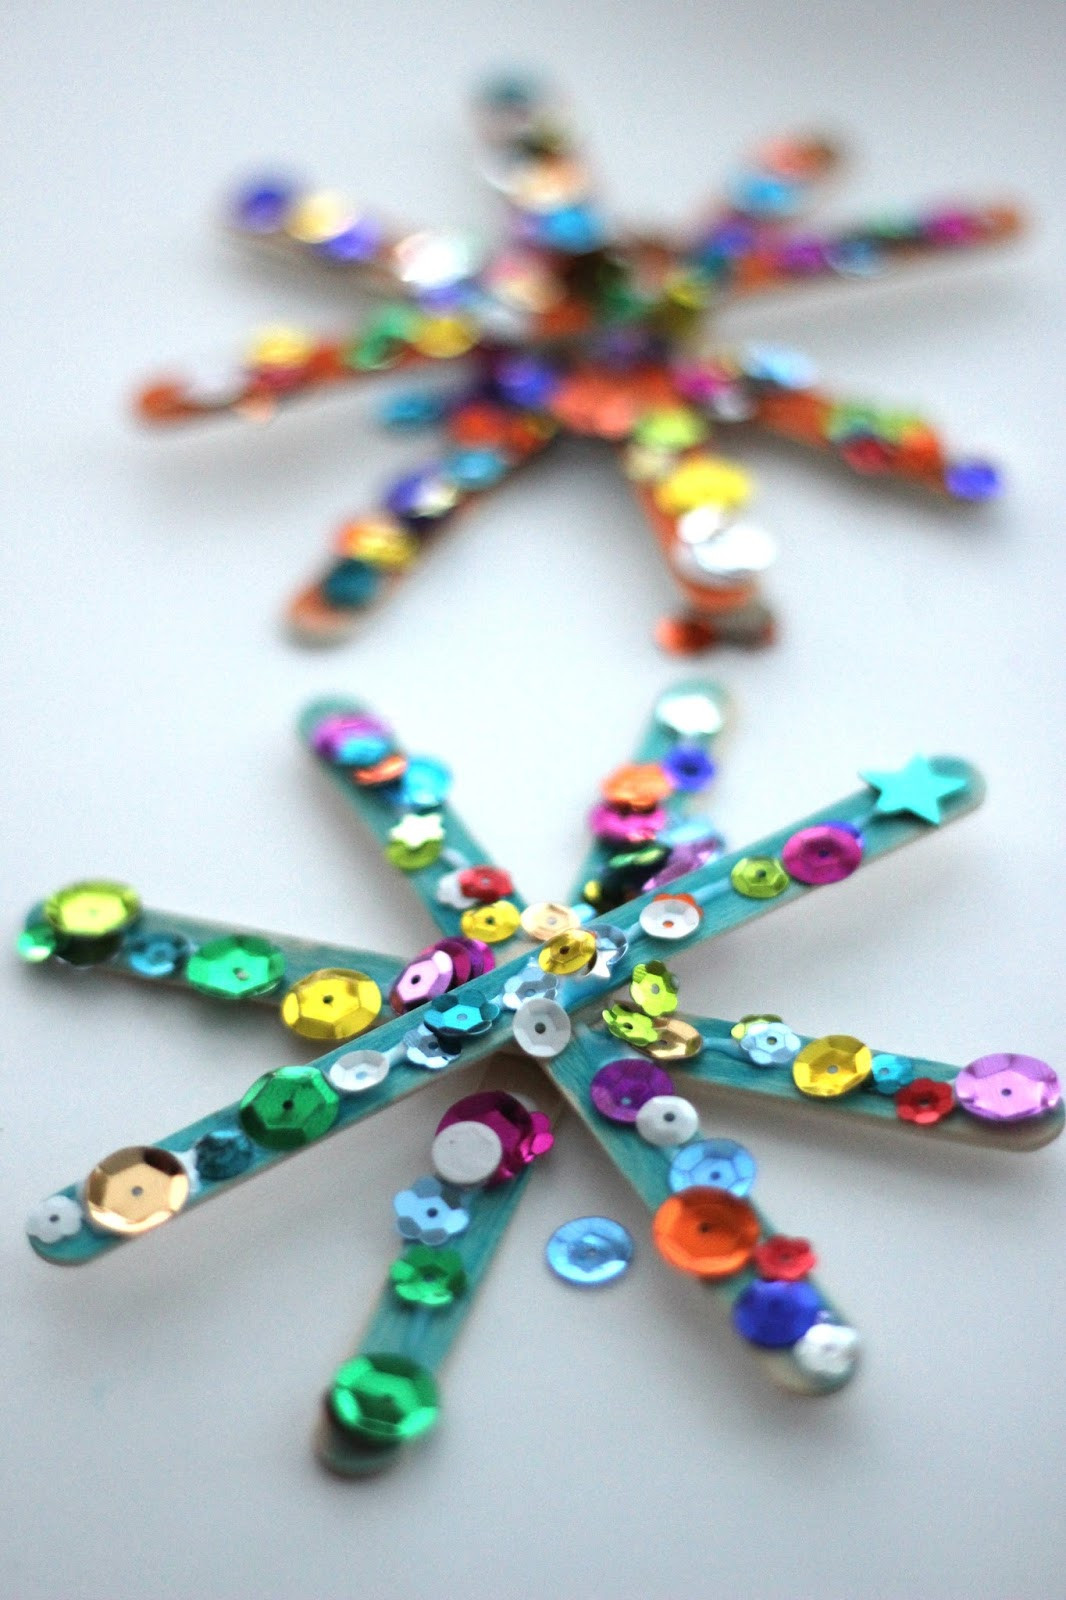 Christmas Arts And Craft Ideas For Toddlers  Toddler Approved Sparkly Snowflake Craft for Kids